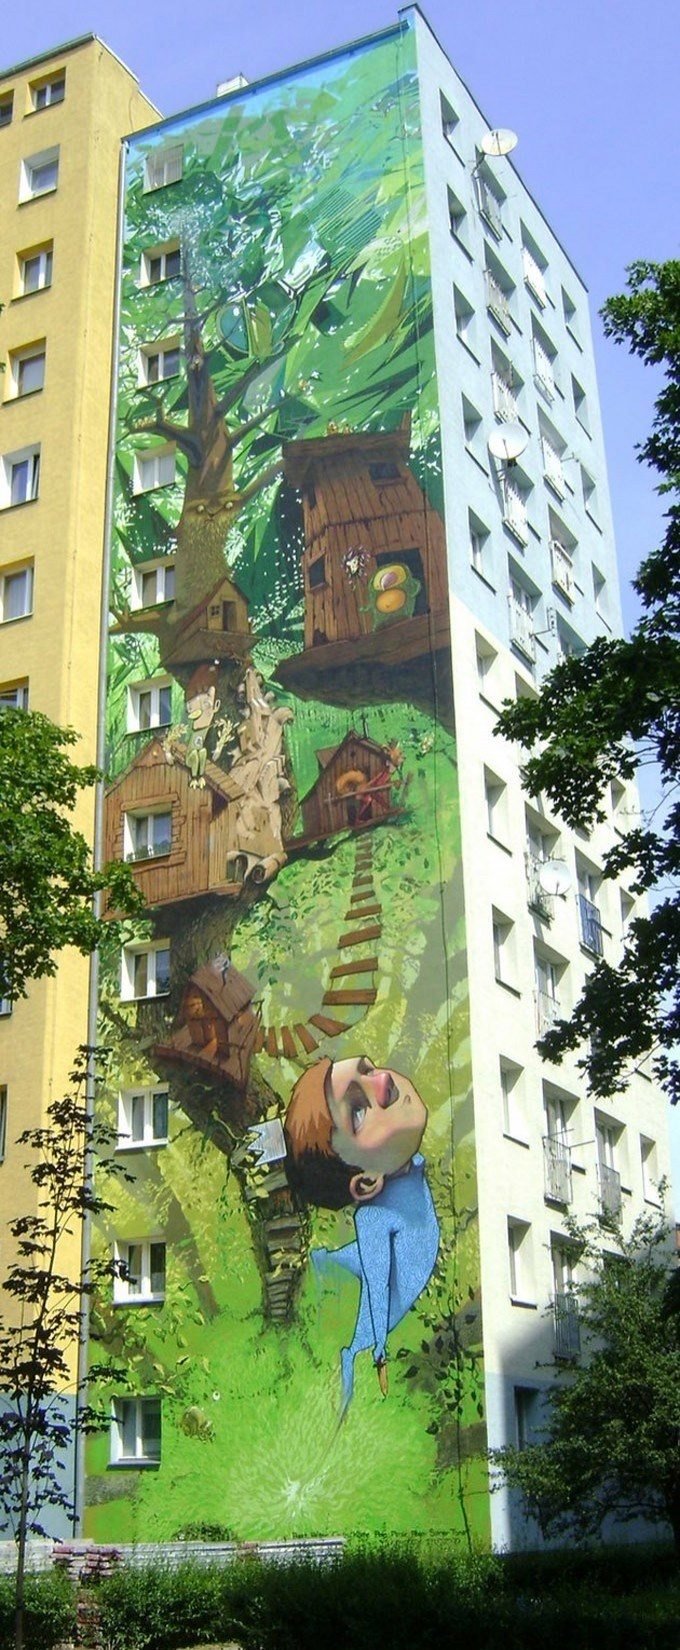 (street art, graffiti, public, urban, wall, building, great, amazing, beautiful, cool, interesting, creative, mural)